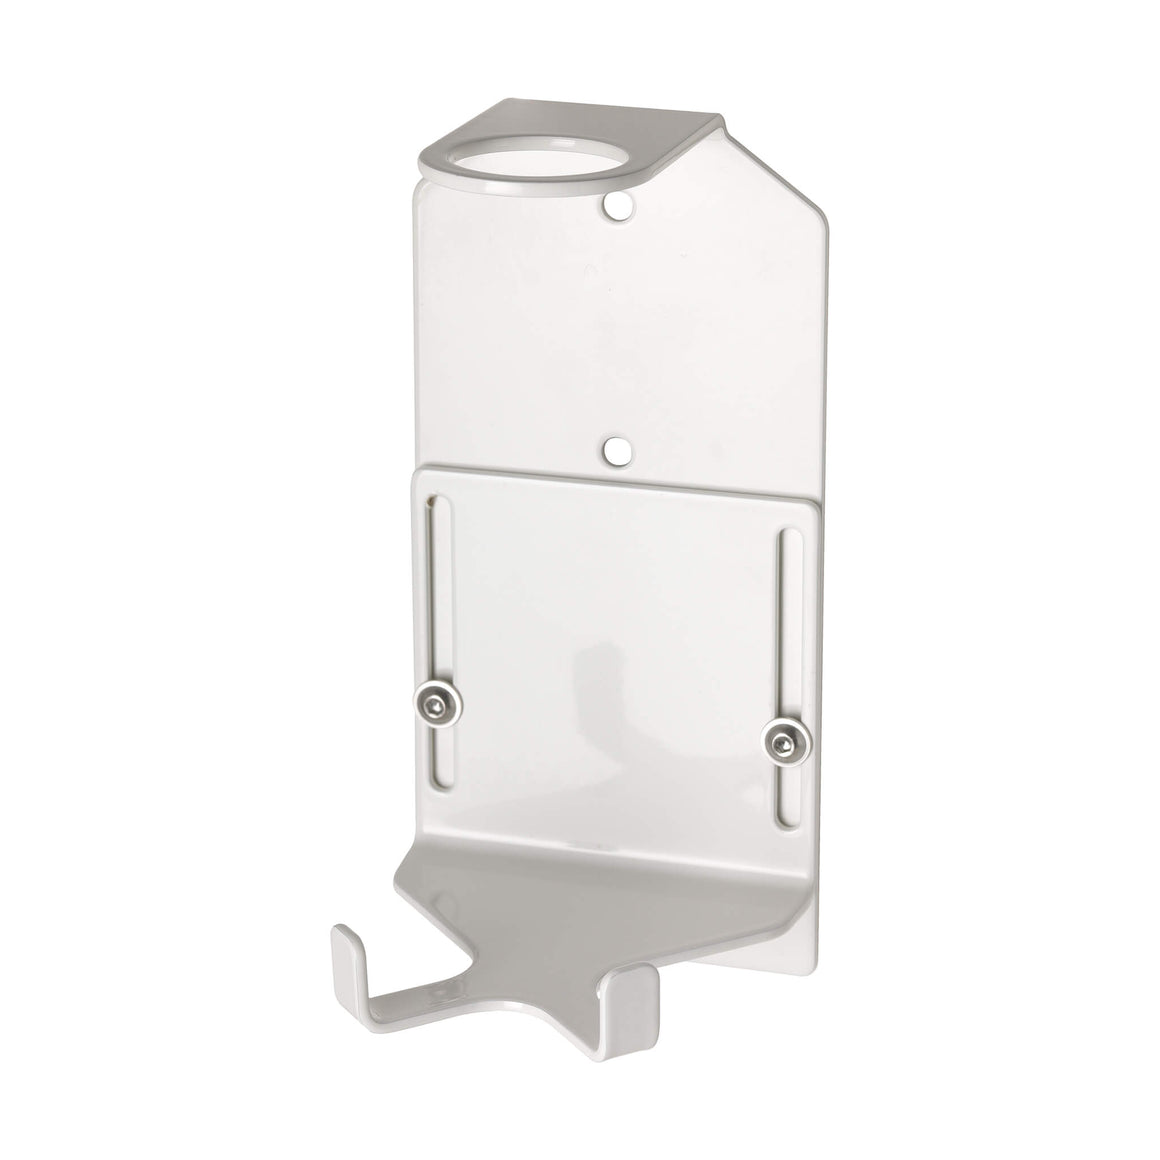 Single 500ml Security Wall-Mounted Holder - Satin White (ONE ONLY IN STOCK)